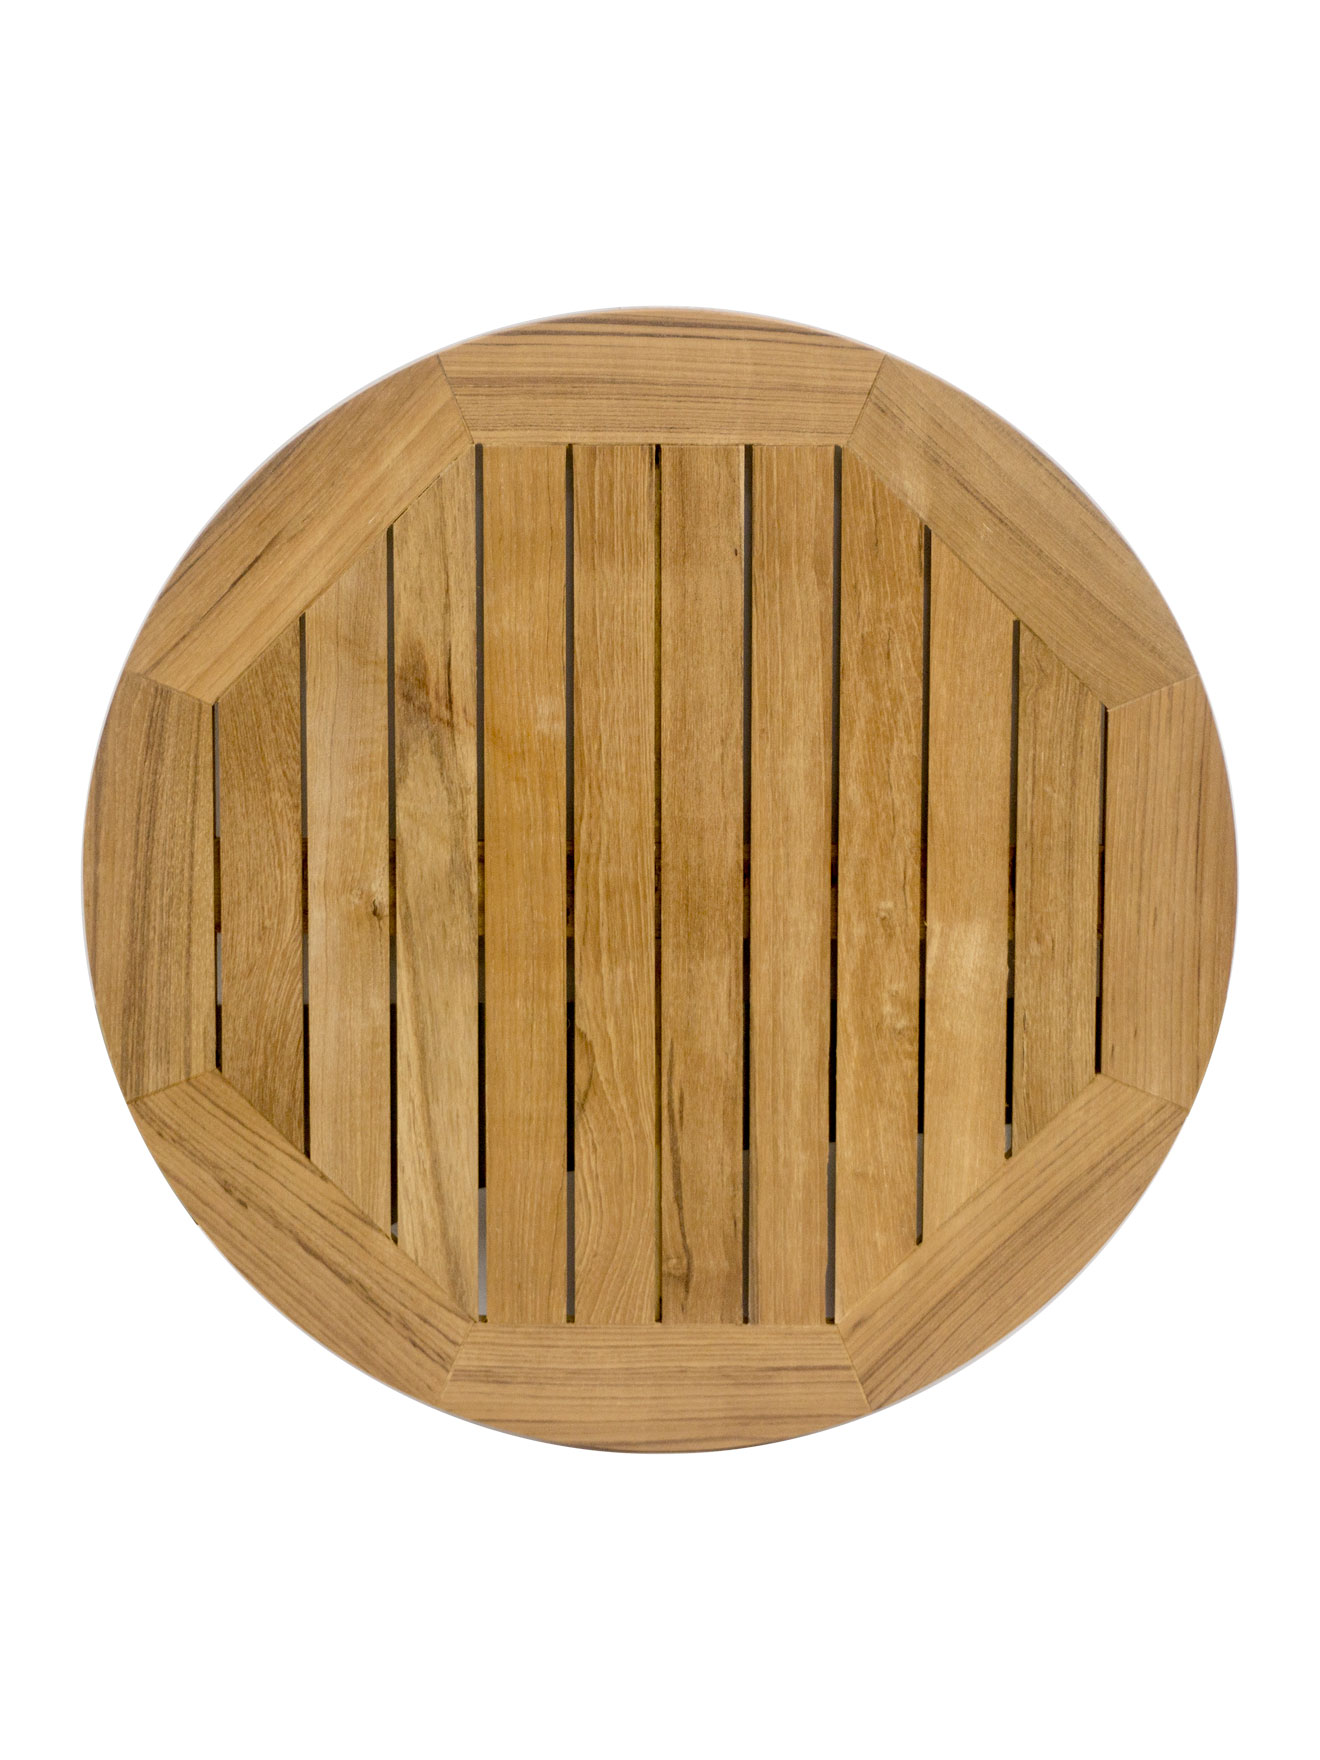 Real Teak Wood Round Indoor/Outdoor Table Top STKR ...